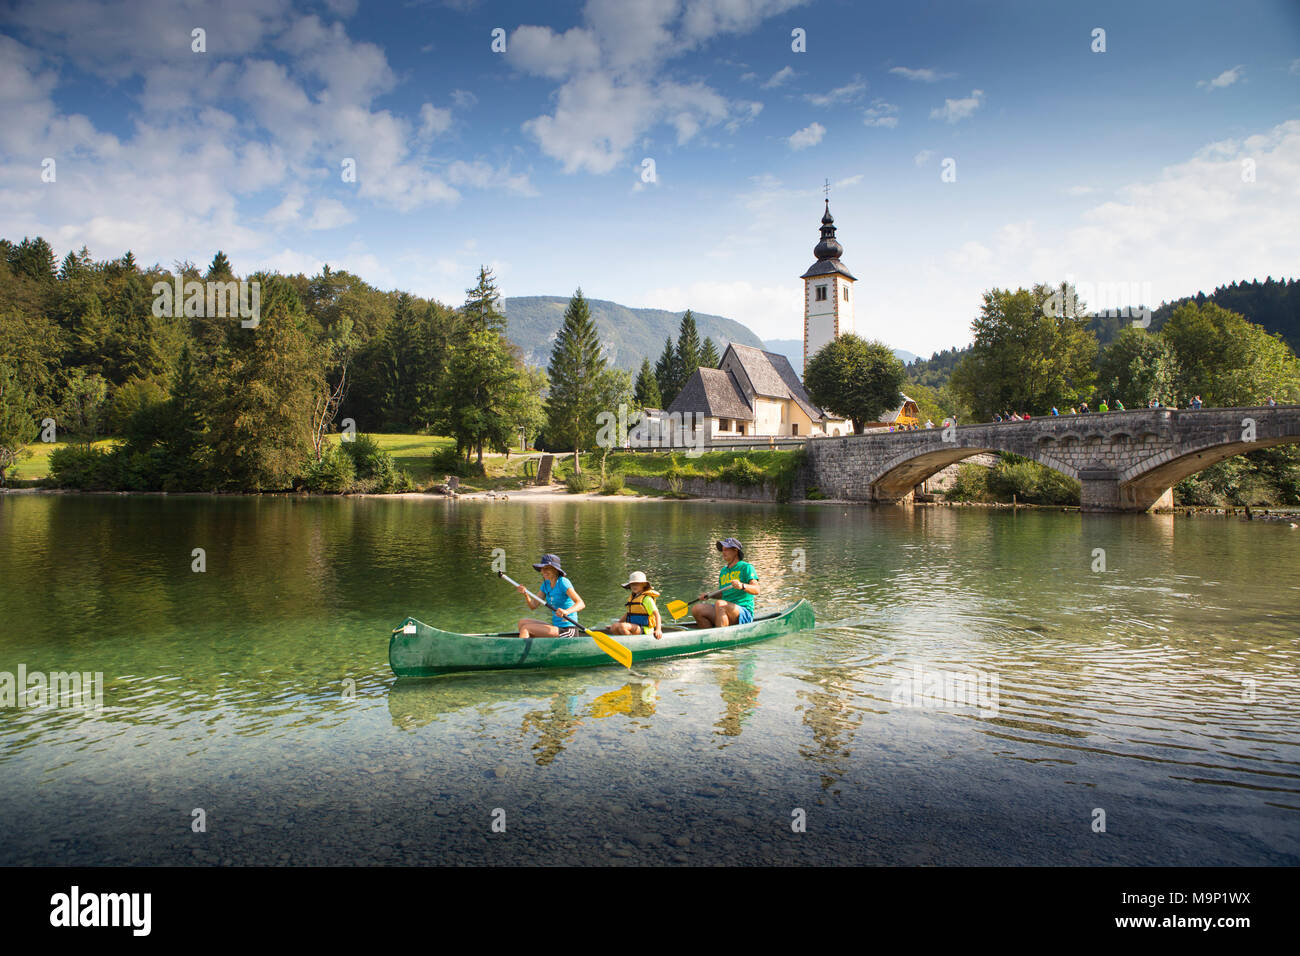 Family in canoe on Lake Bohinj, with church and bridge of Ribcev Laz in background, Triglav, Slovenia - Stock Image